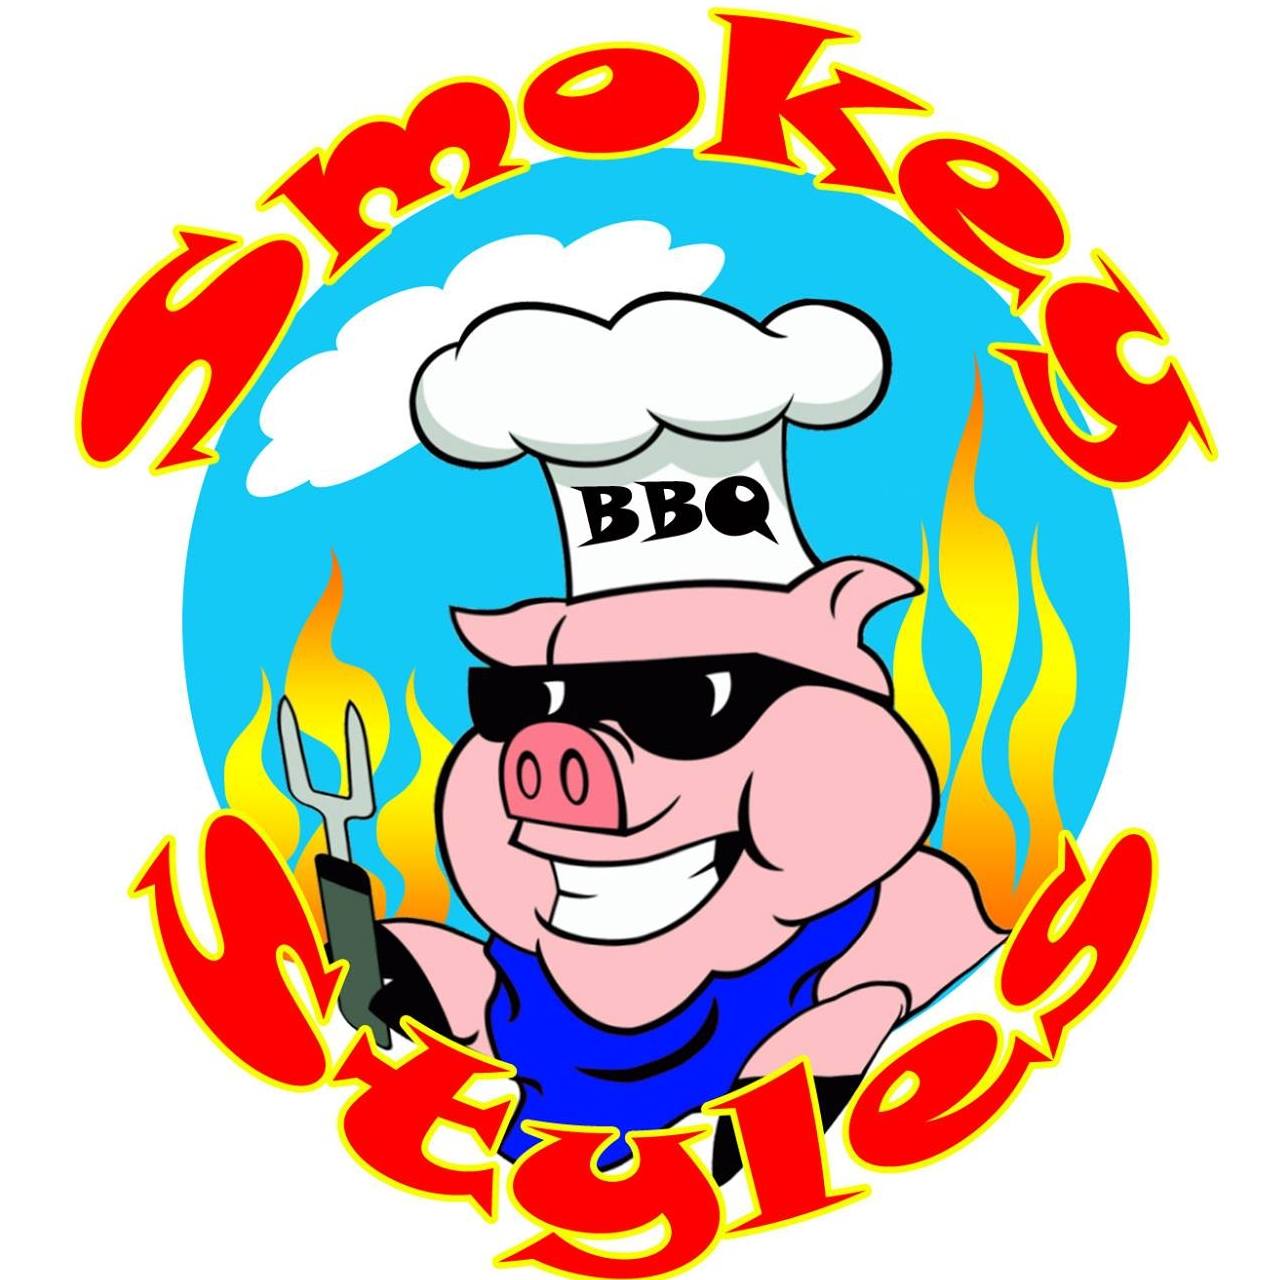 Food provided by Smokey Styles BBQ!